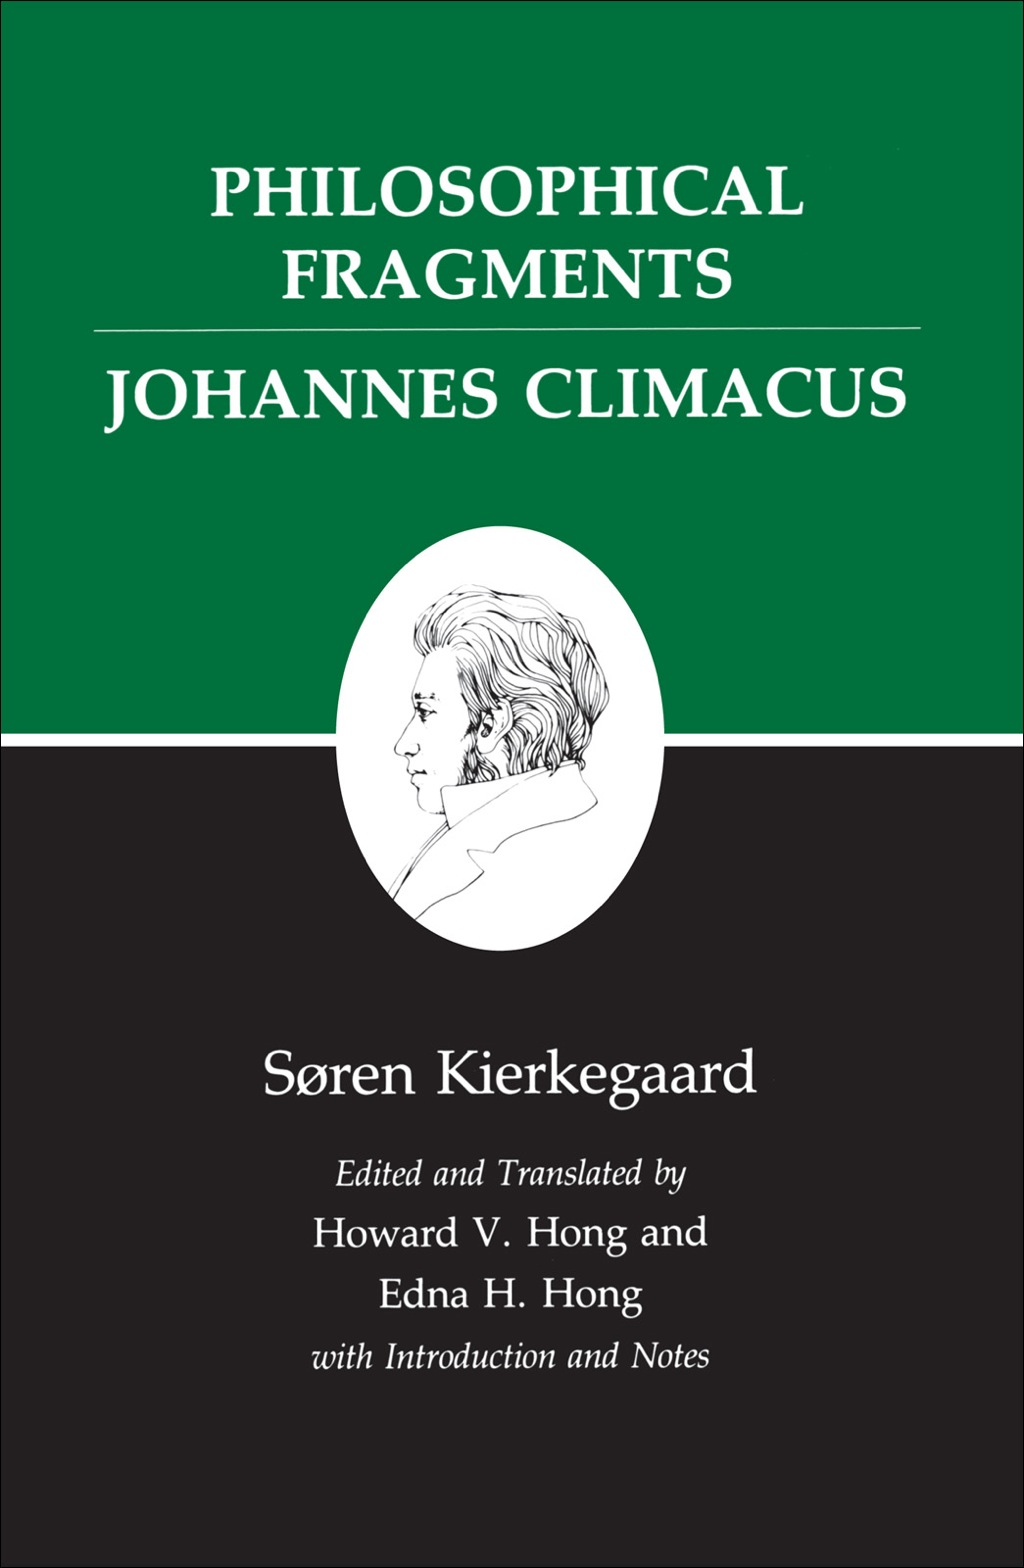 Kierkegaard's Writings, VII, Volume 7: Philosophical Fragments, or a Fragment of Philosophy/Johannes Climacus, or De omnibus dubitandum est. (Two books in one volume) (ebook) eBooks